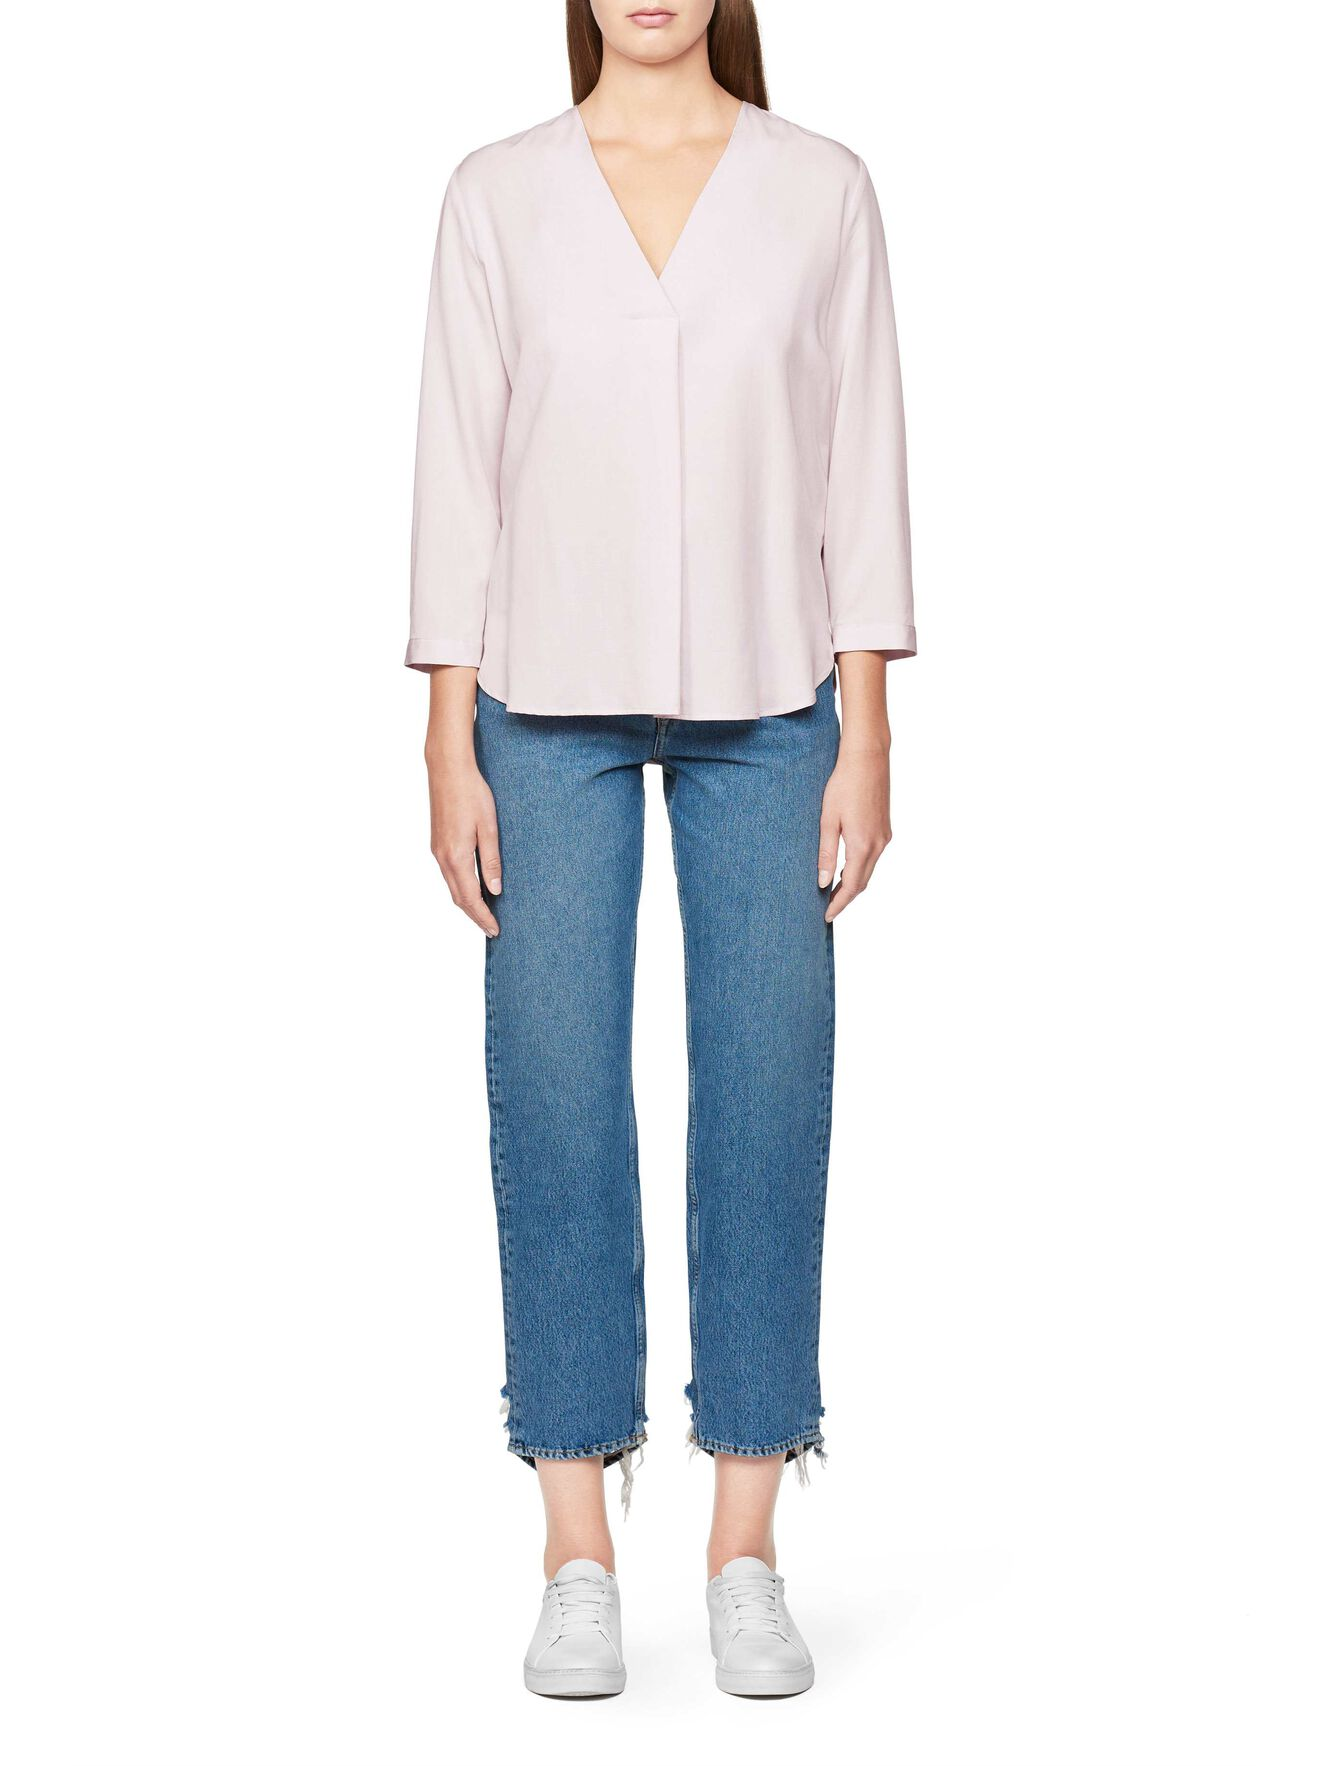 Mere 2 Blouse in Pale Pink from Tiger of Sweden